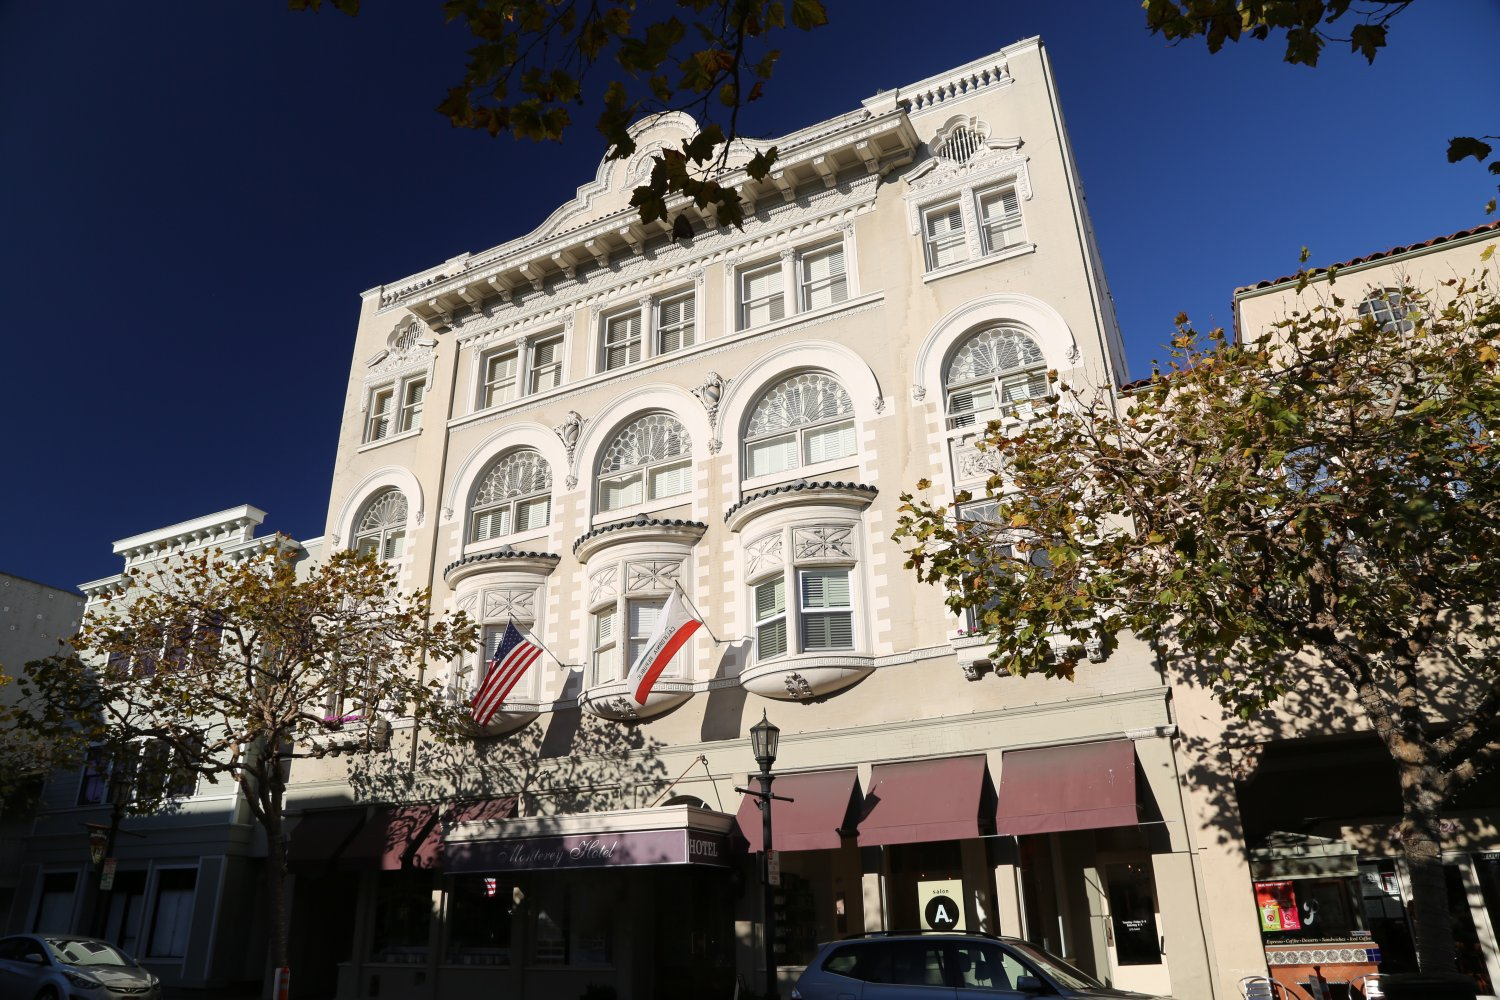 Monterey Hotel Is Conveniently Located At 406 Alvarado Street In The Heart Of Historical Downtown Great Location For An Easy And Short Walk To